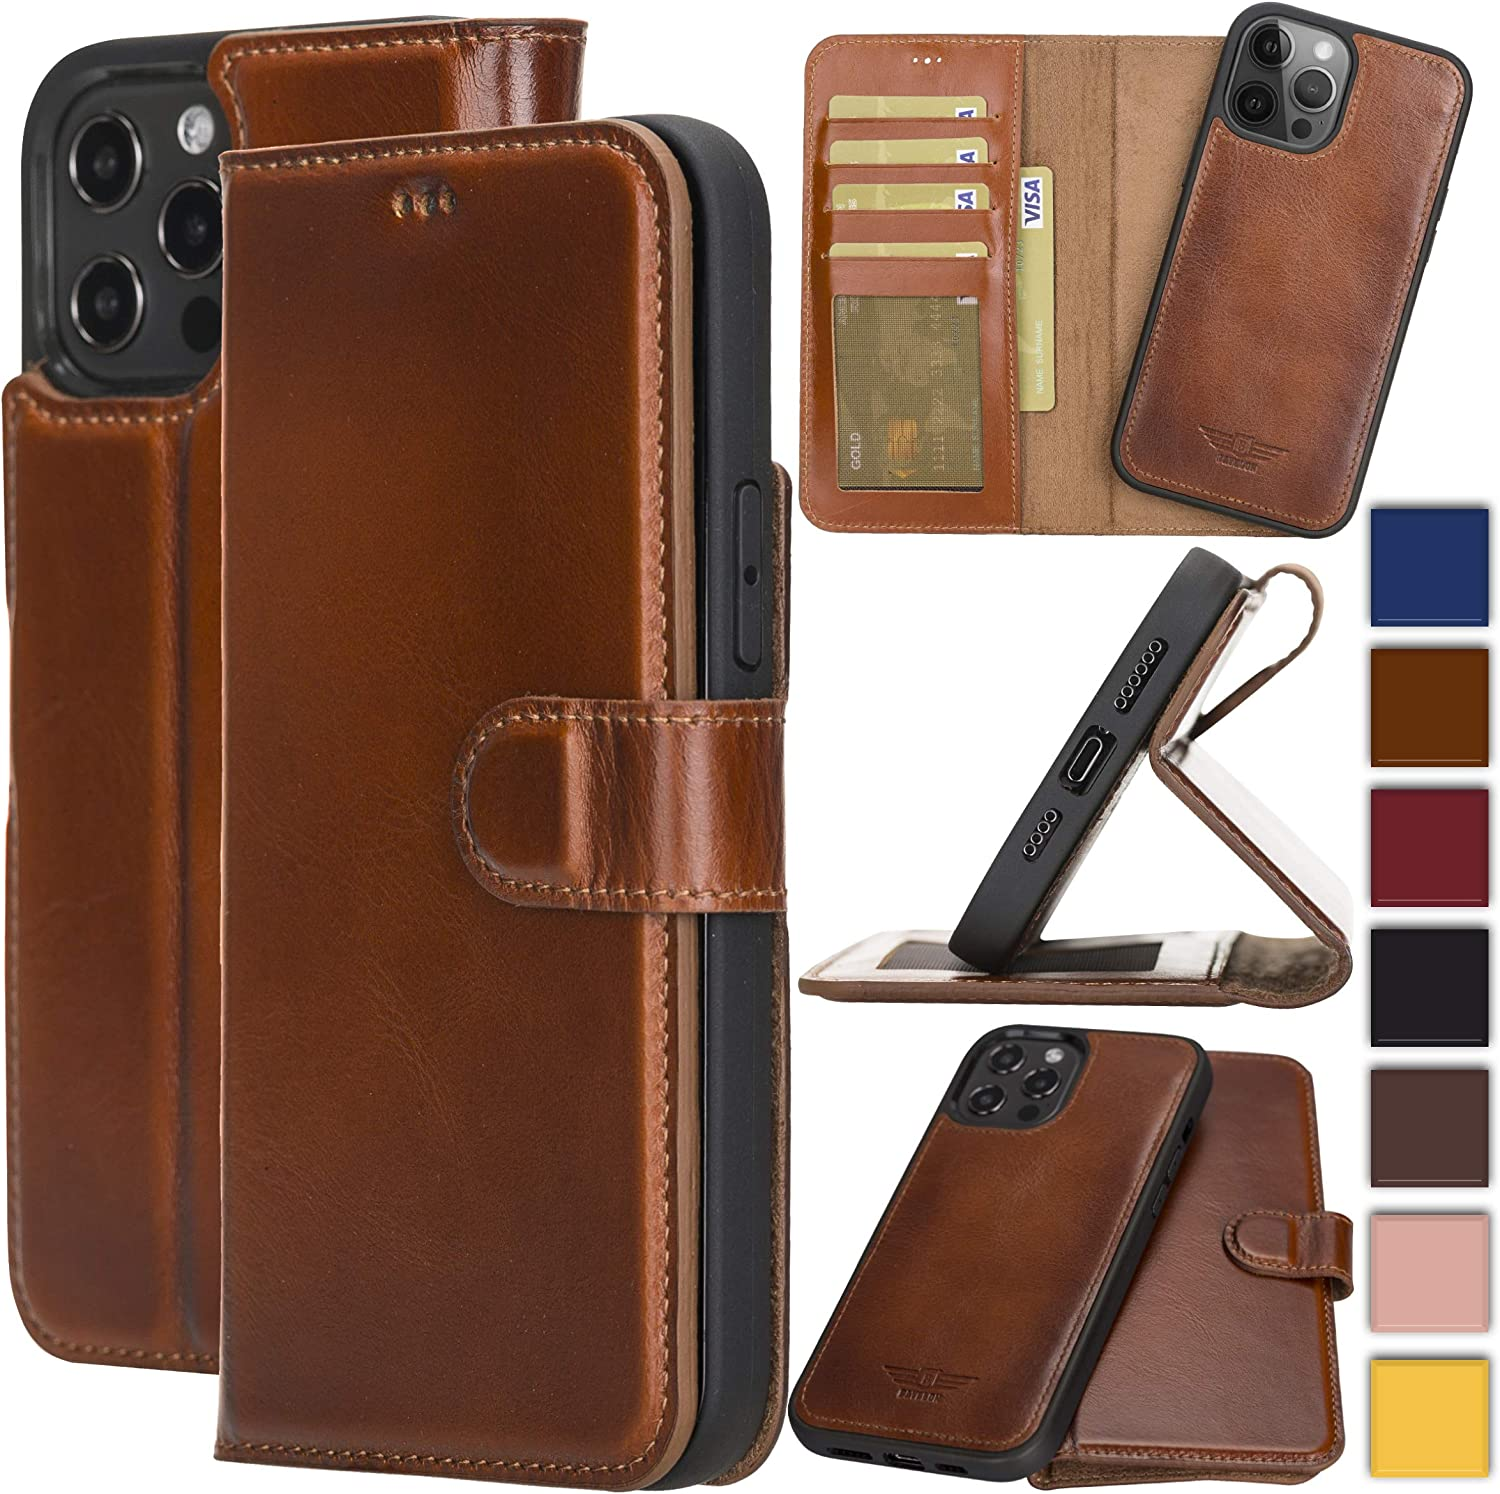 Bayelon Genuine Leather Wallet Case for iPhone 12 Pro Max 6.7